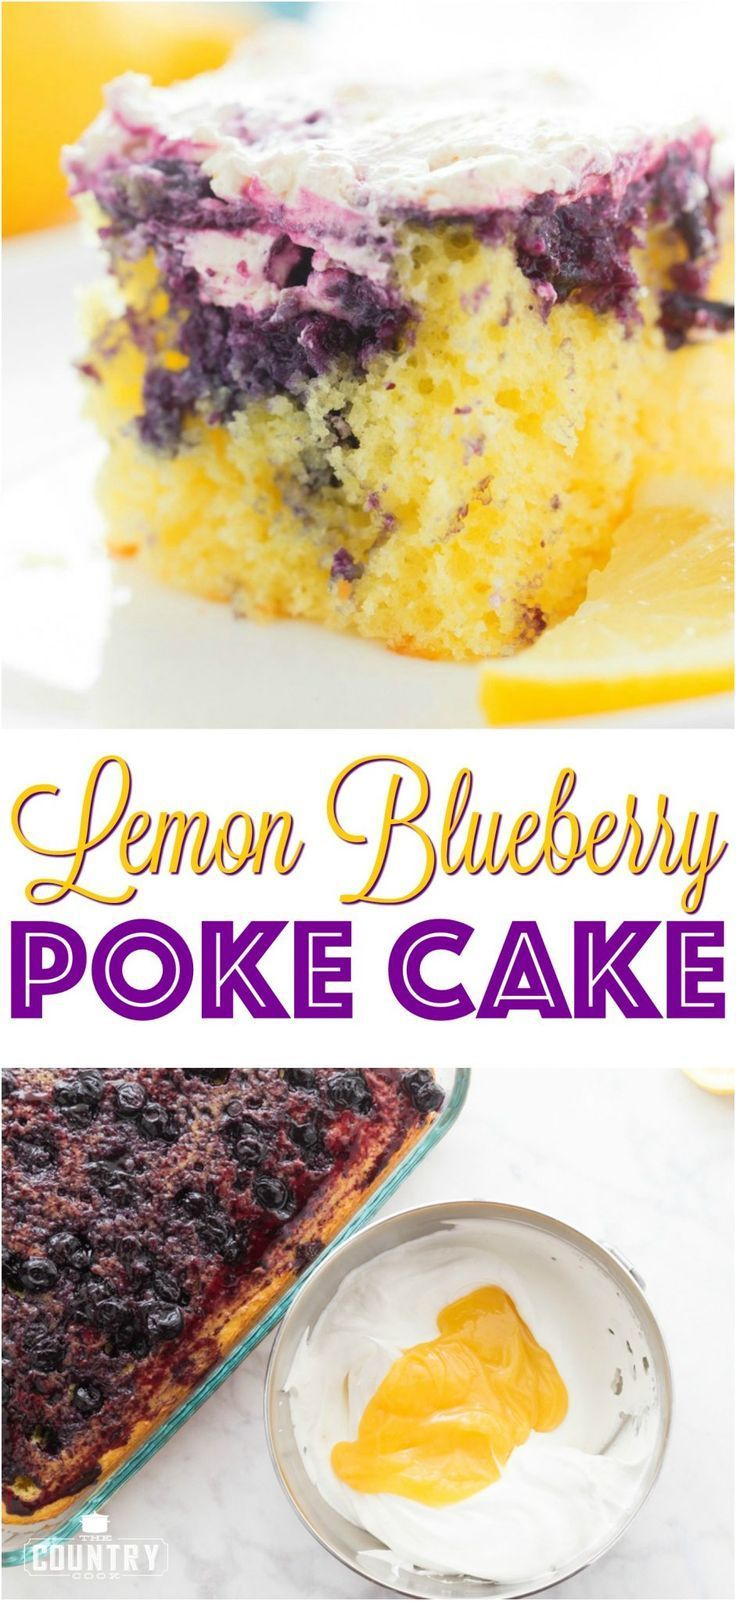 Lemon blueberry poke cake recipe from the country cook lemon cake lemon blueberry poke cake recipe from the country cook lemon cake dessert forumfinder Gallery